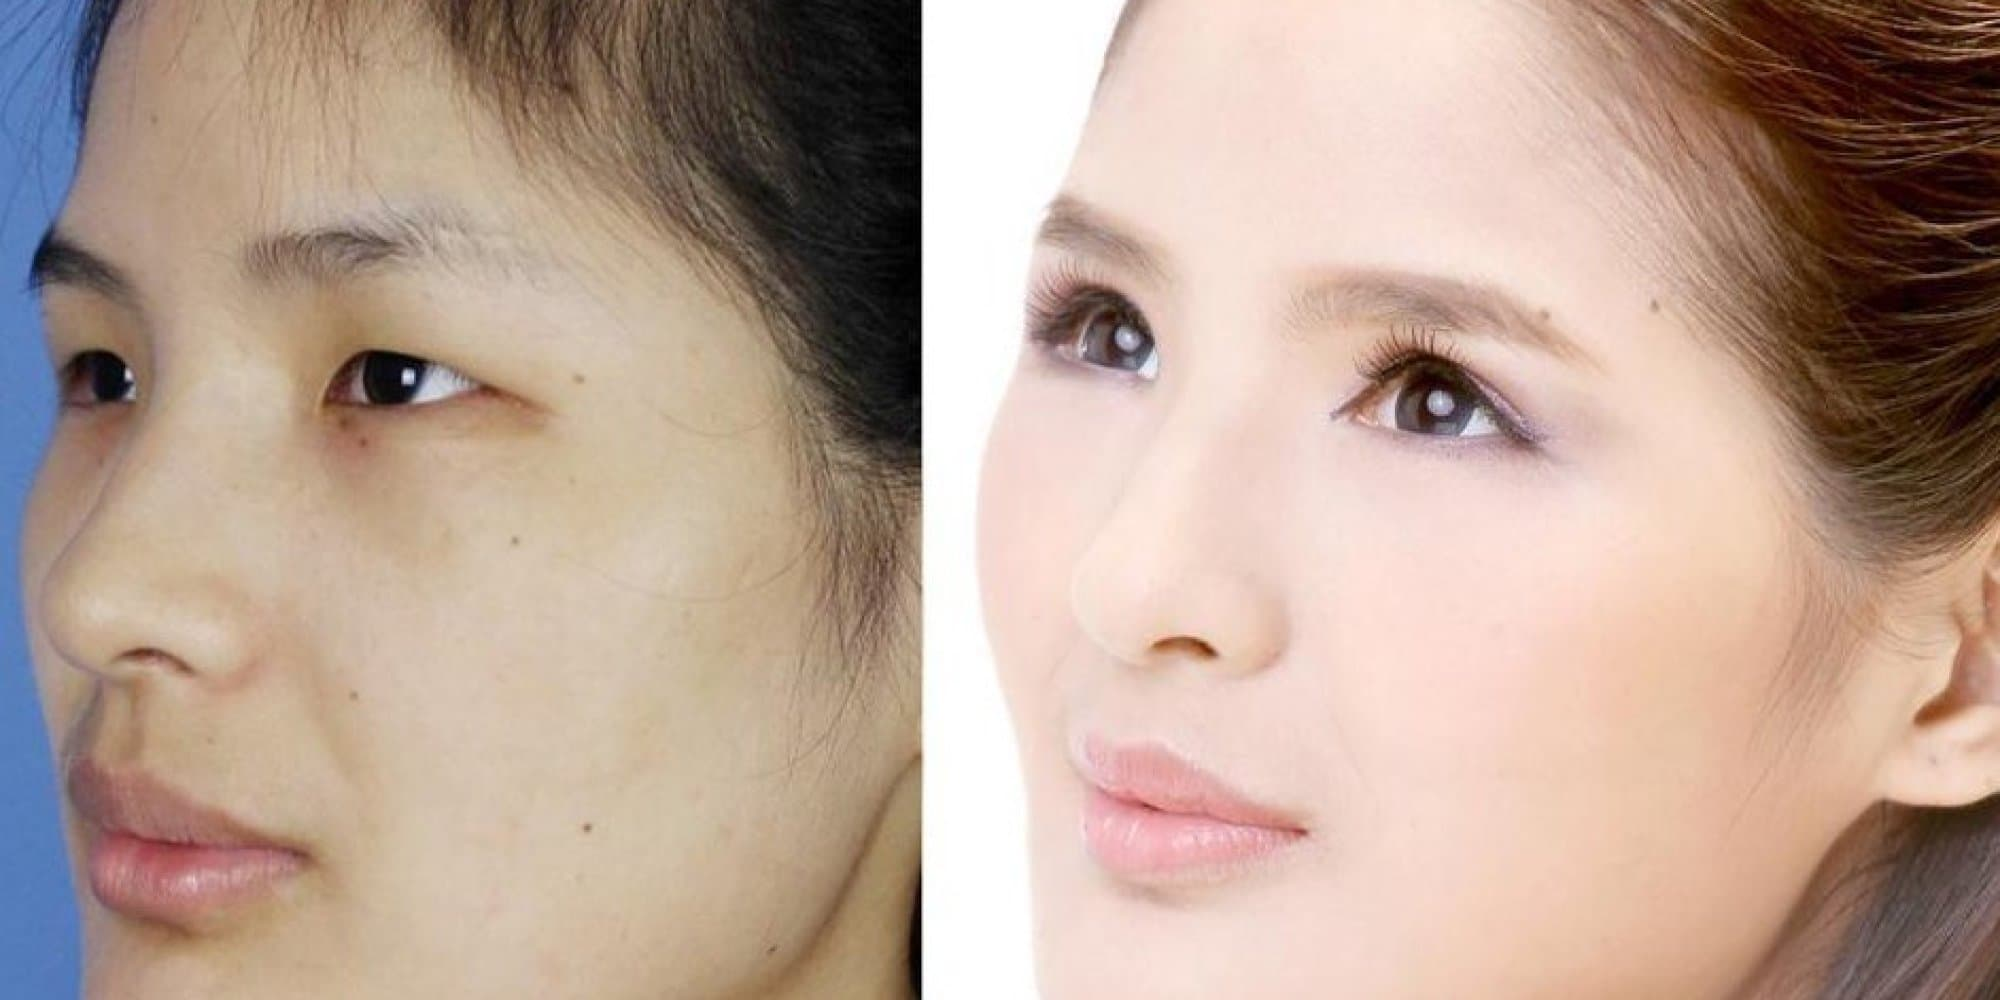 Satire Before And After Plastic Surgery photo - 1